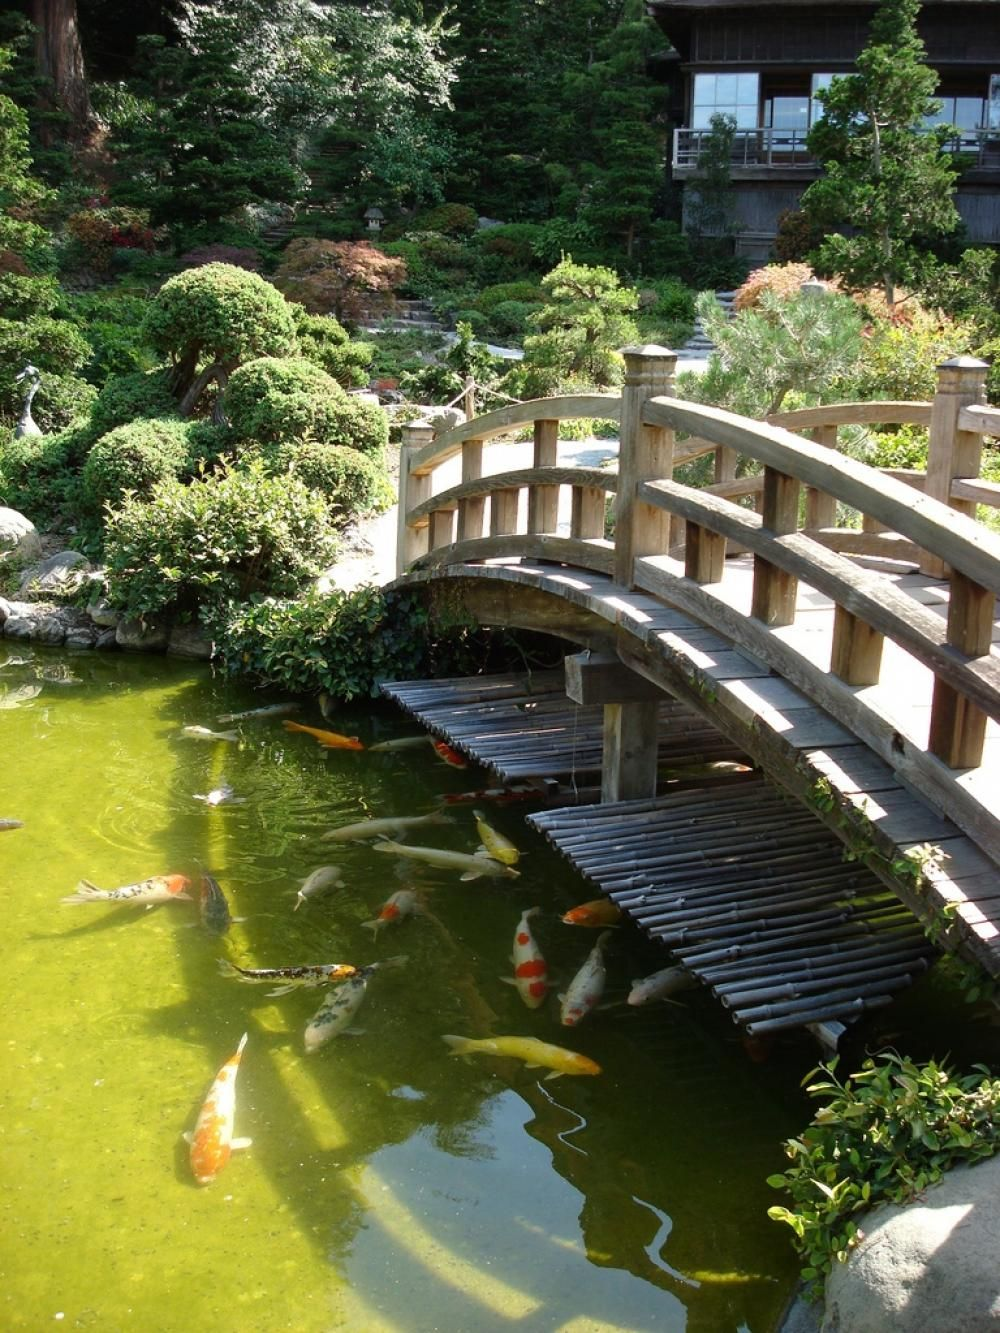 Gardening Large Koi Pond With Bridge In Japanese Garden